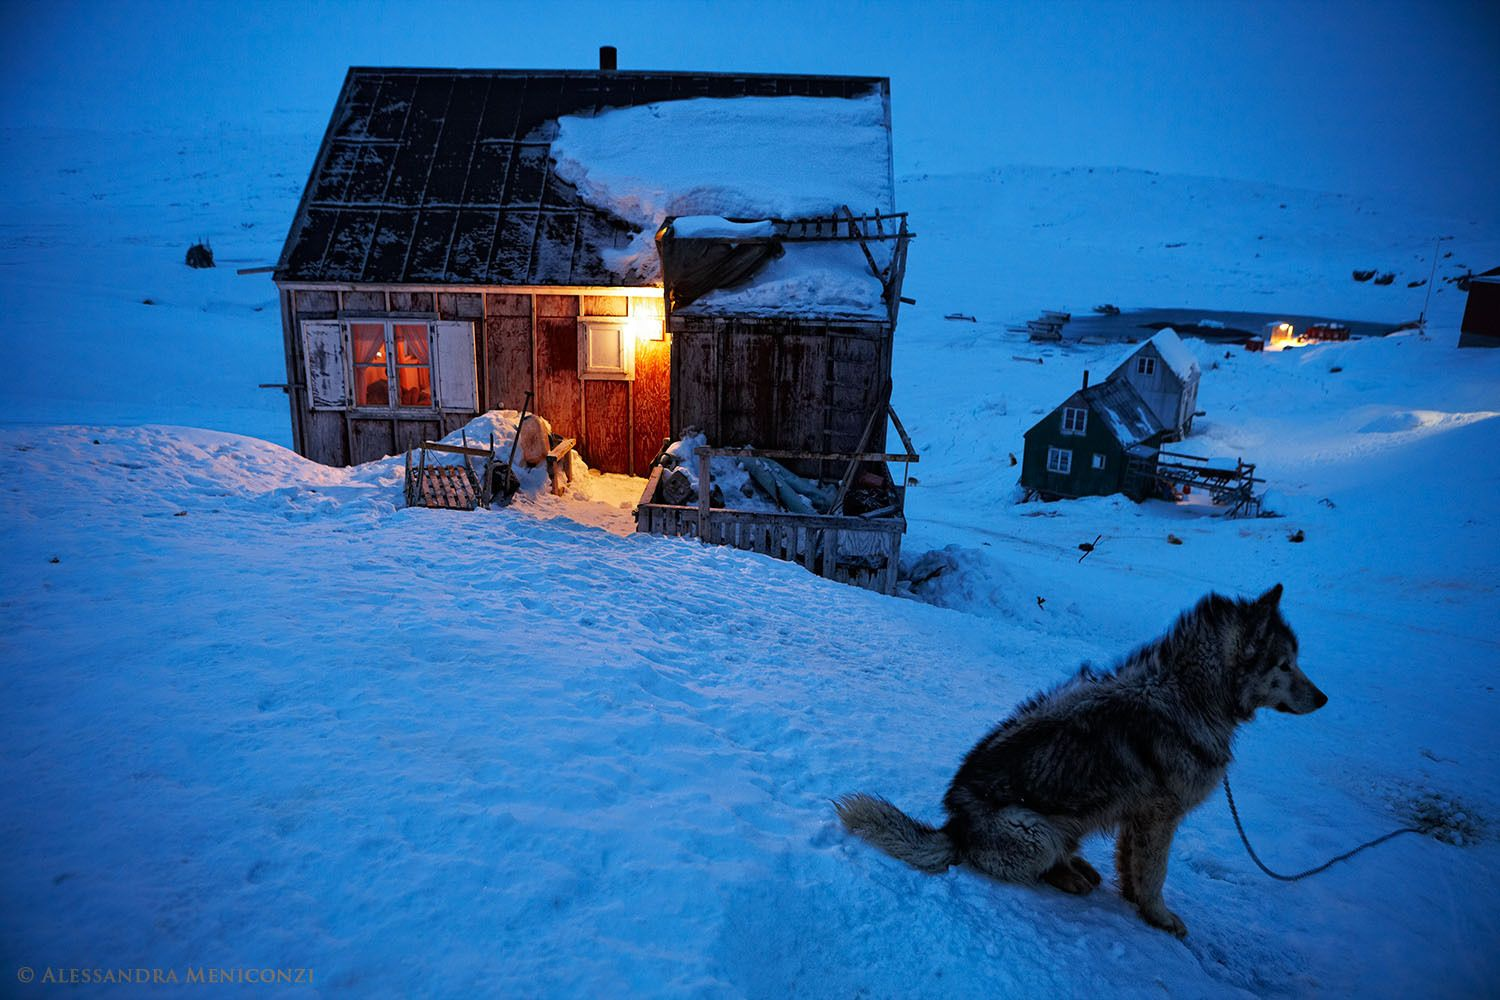 Hunter's home in the small settlement of Tiniteqilaaq at the edge of Sermilik Fjord in southeast Greenland.